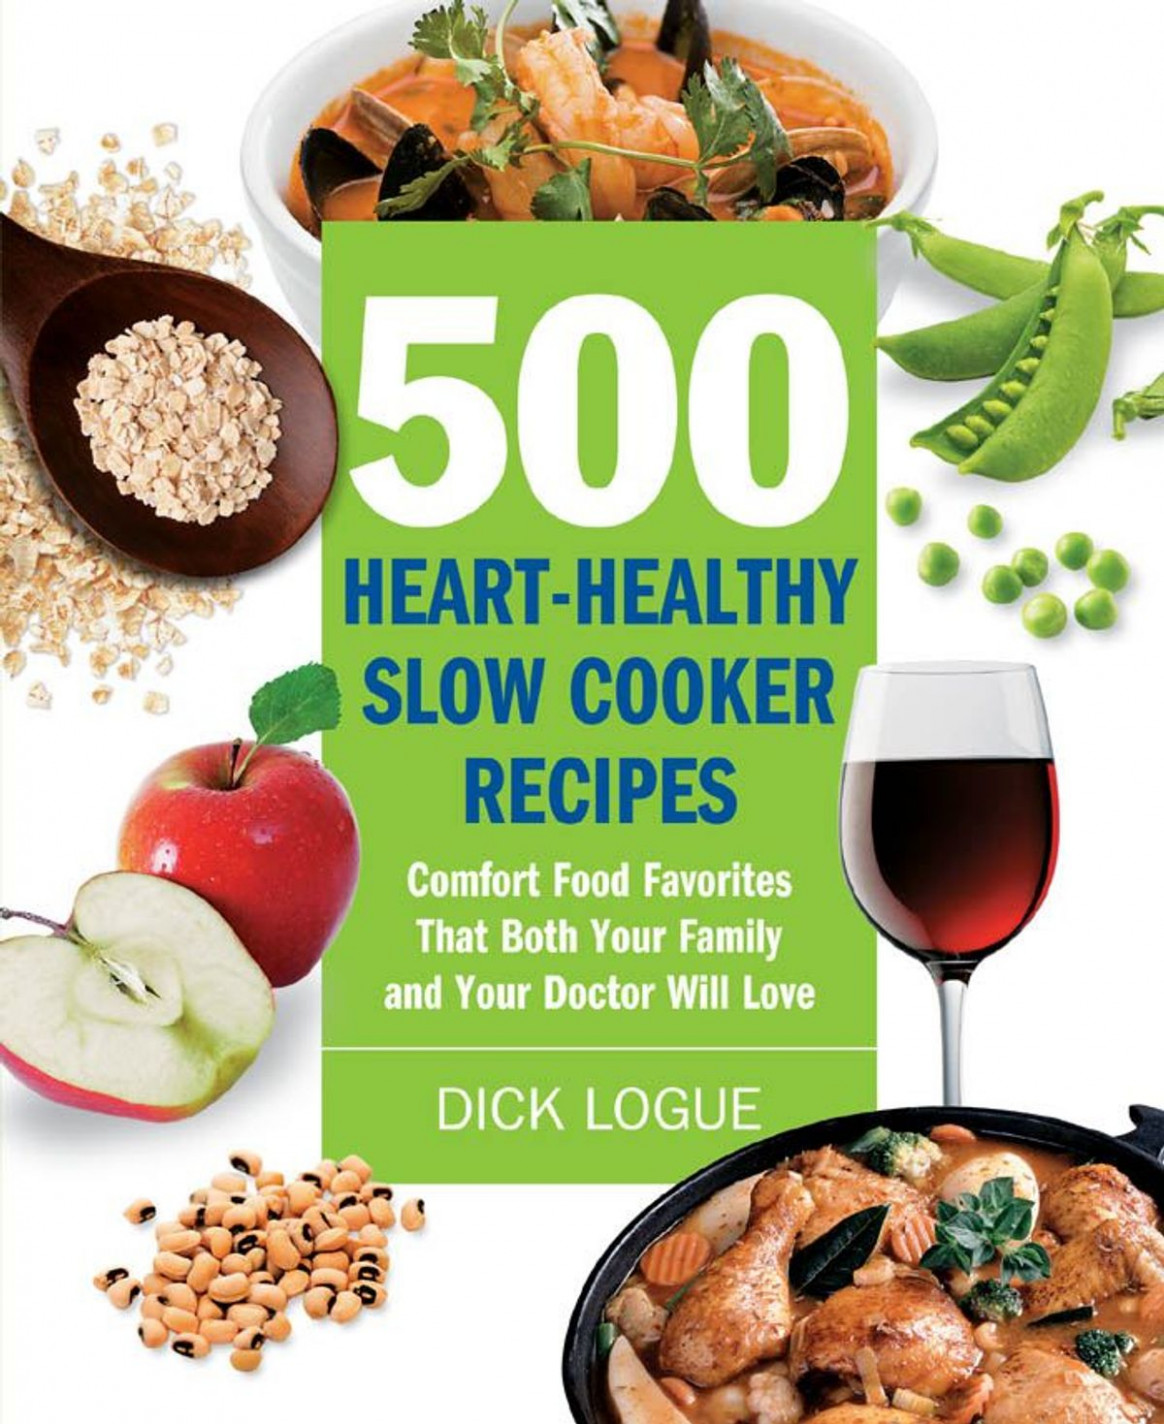 15 Heart-Healthy Slow Cooker Recipes: Comfort Food Favorites That Both  Your Family and Doctor Will Love ebook by Dick Logue - Rakuten Kobo - healthy recipes heart